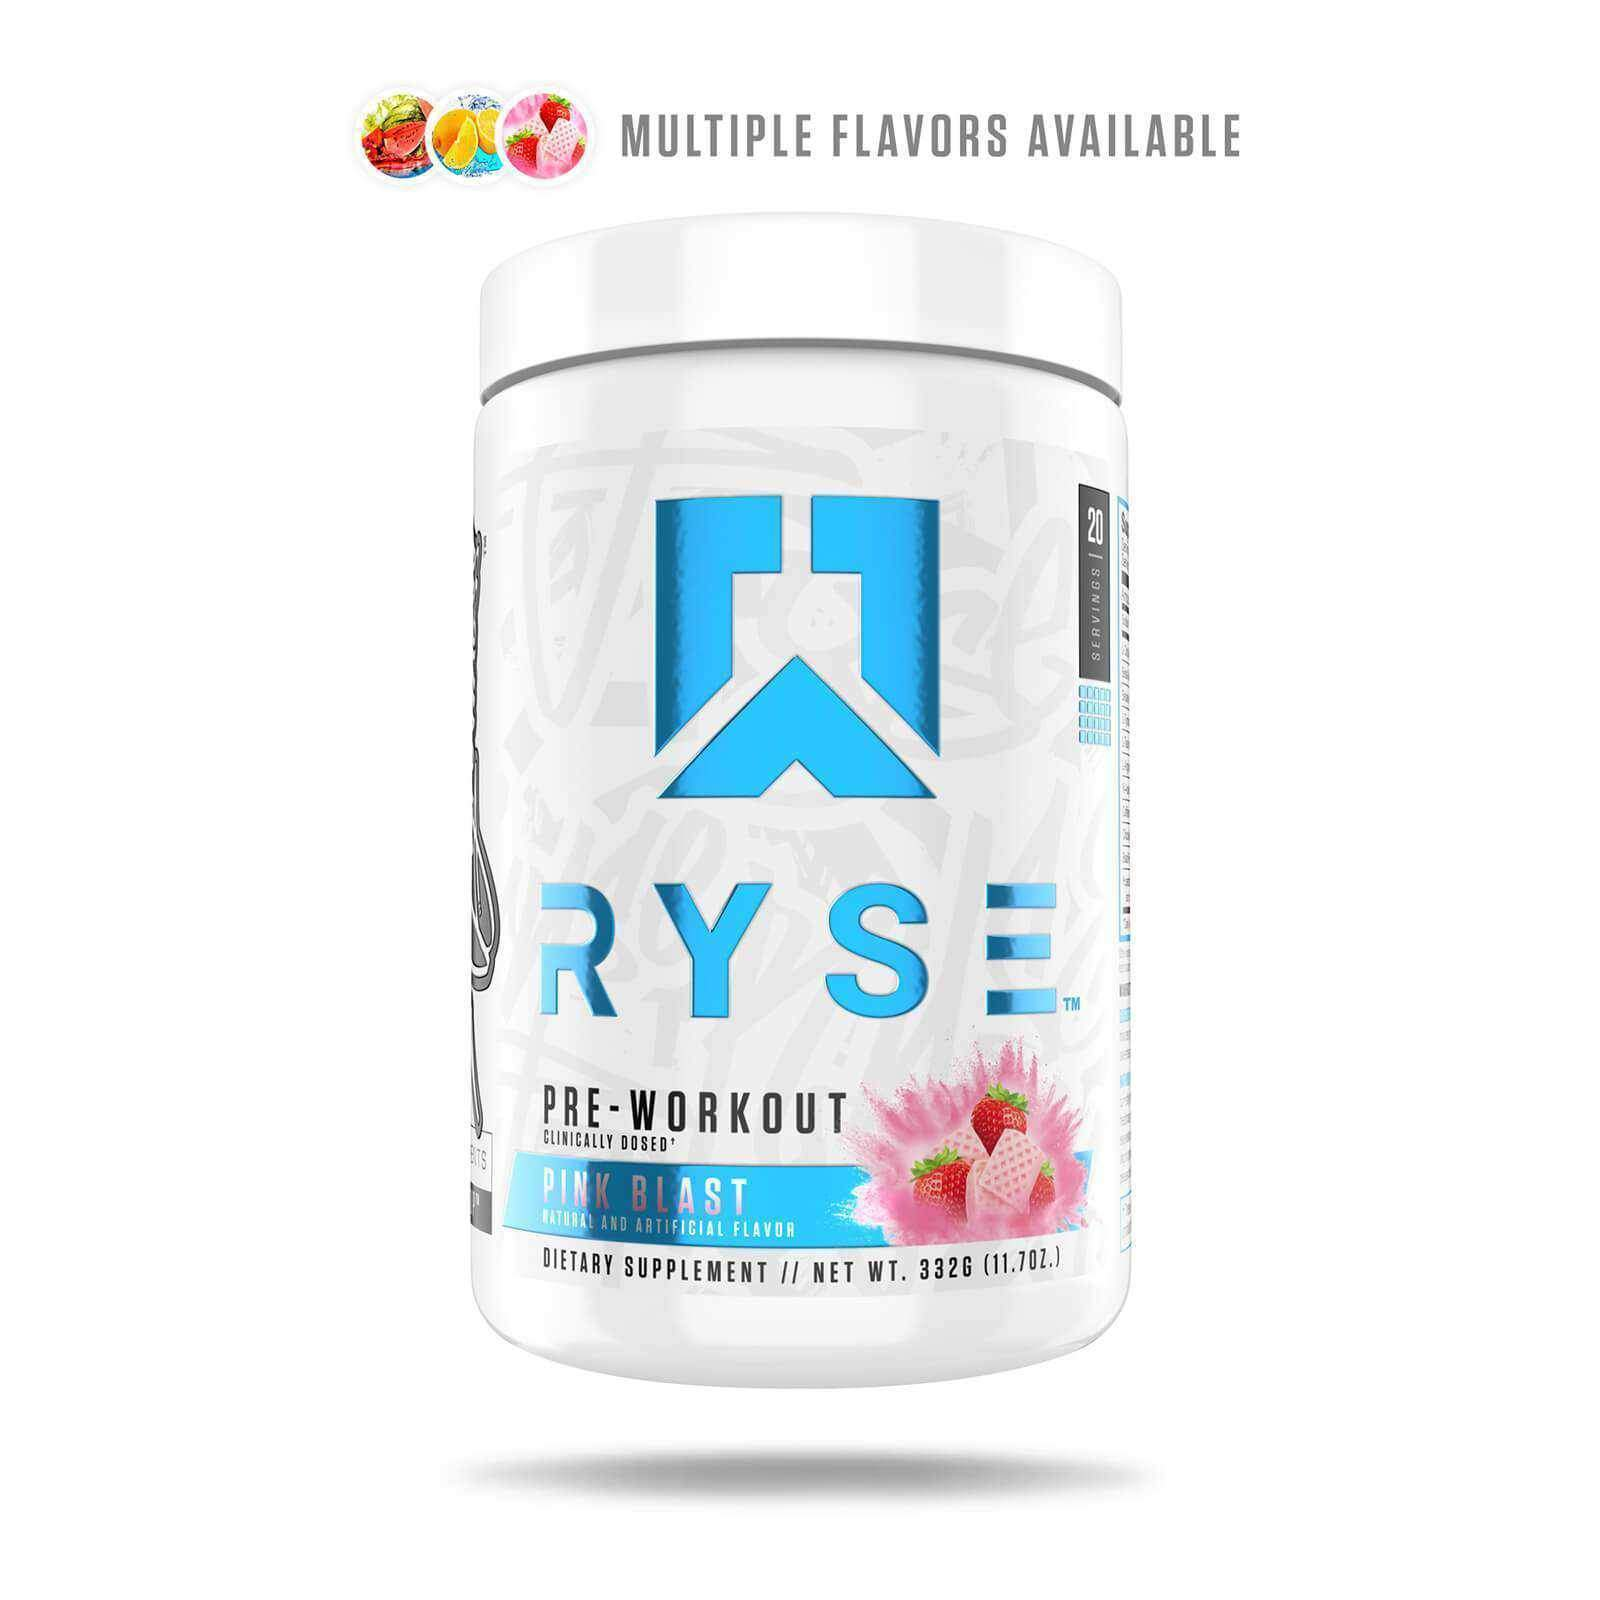 RYSE Supplements Pre Workout 20 Servings Powder-Pre Workouts-londonsupps